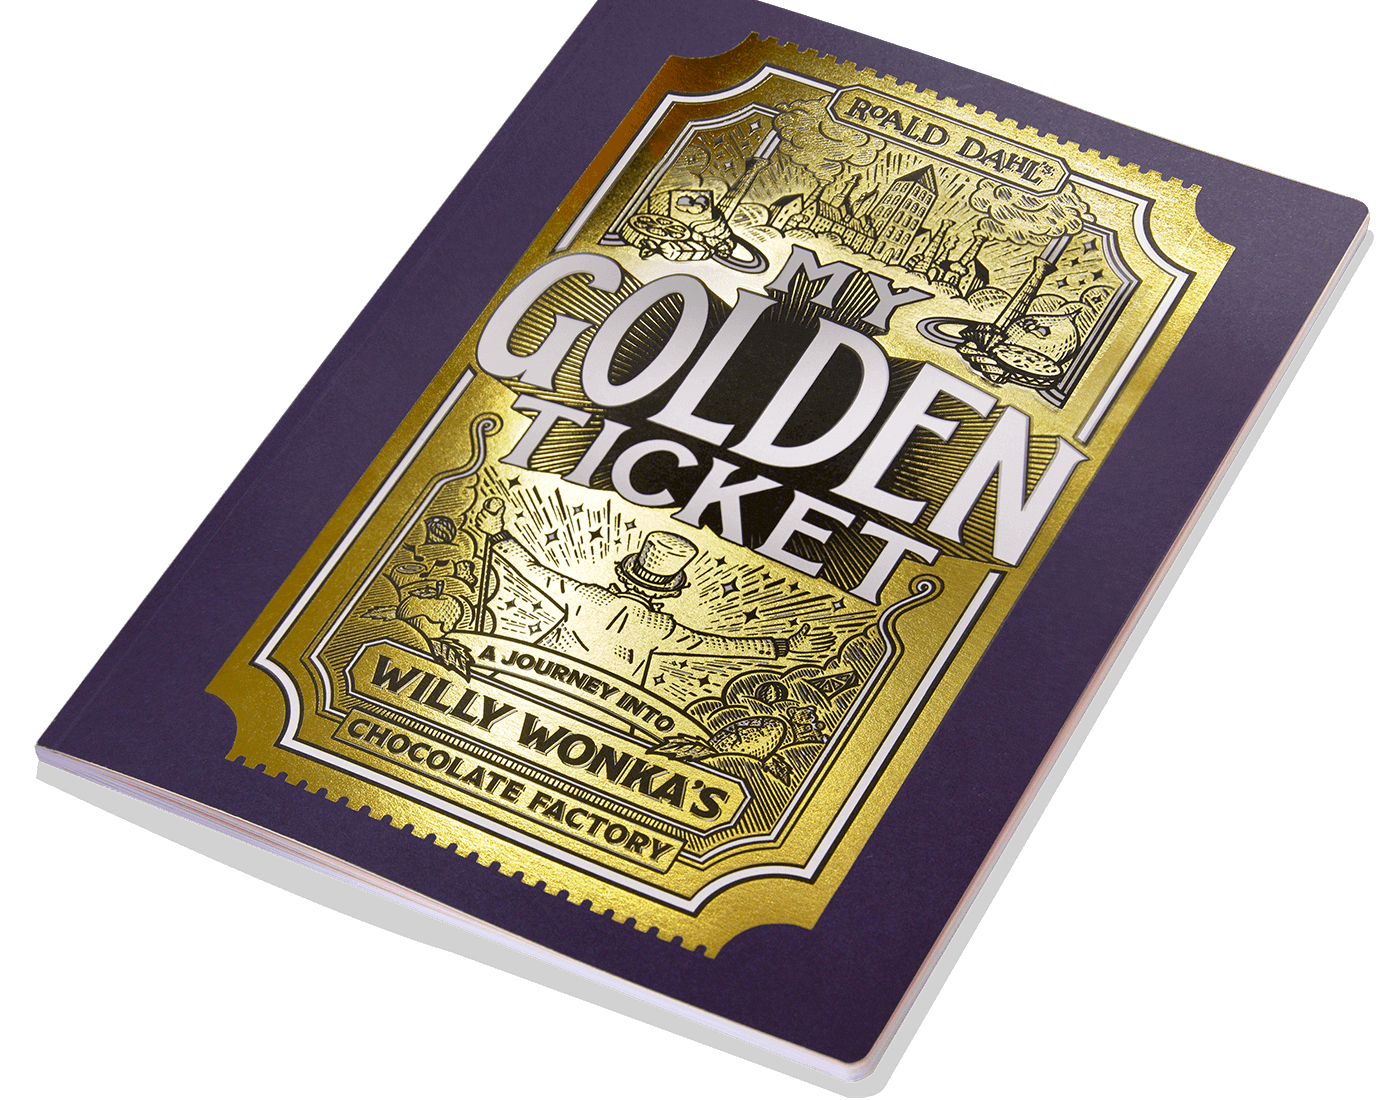 My golden ticket book